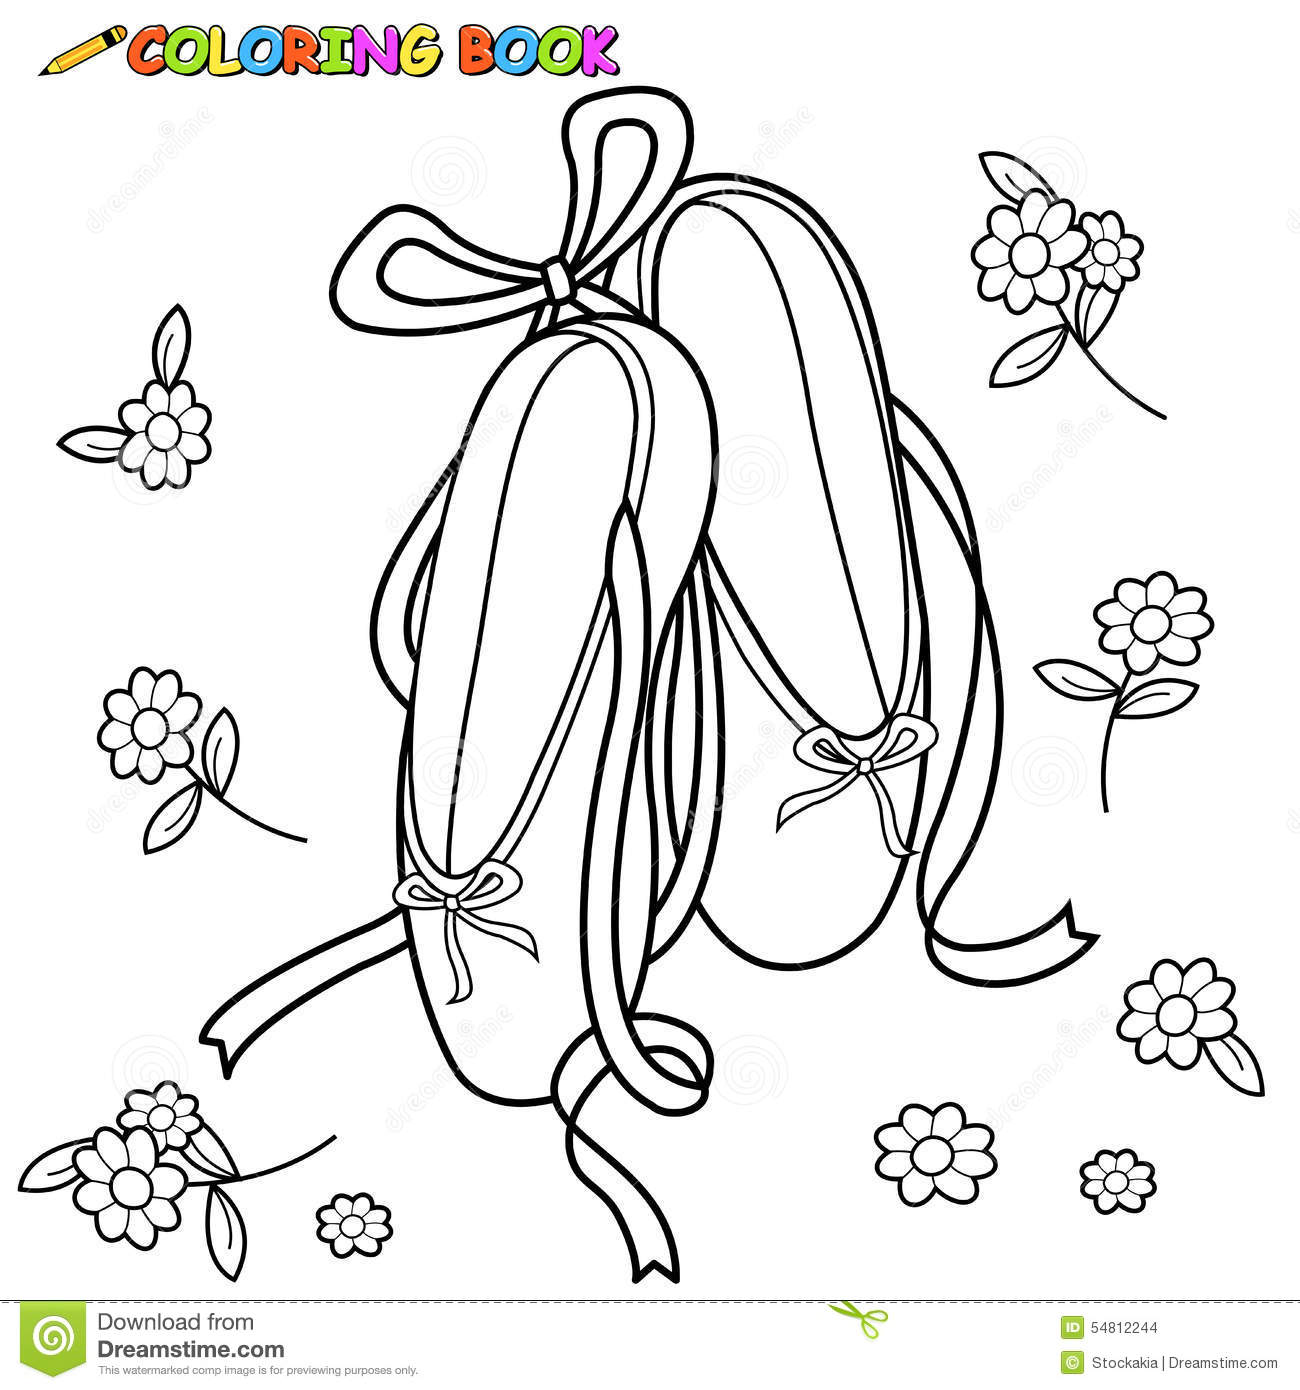 Ballet coloring page stock illustration. Illustration of costume ...